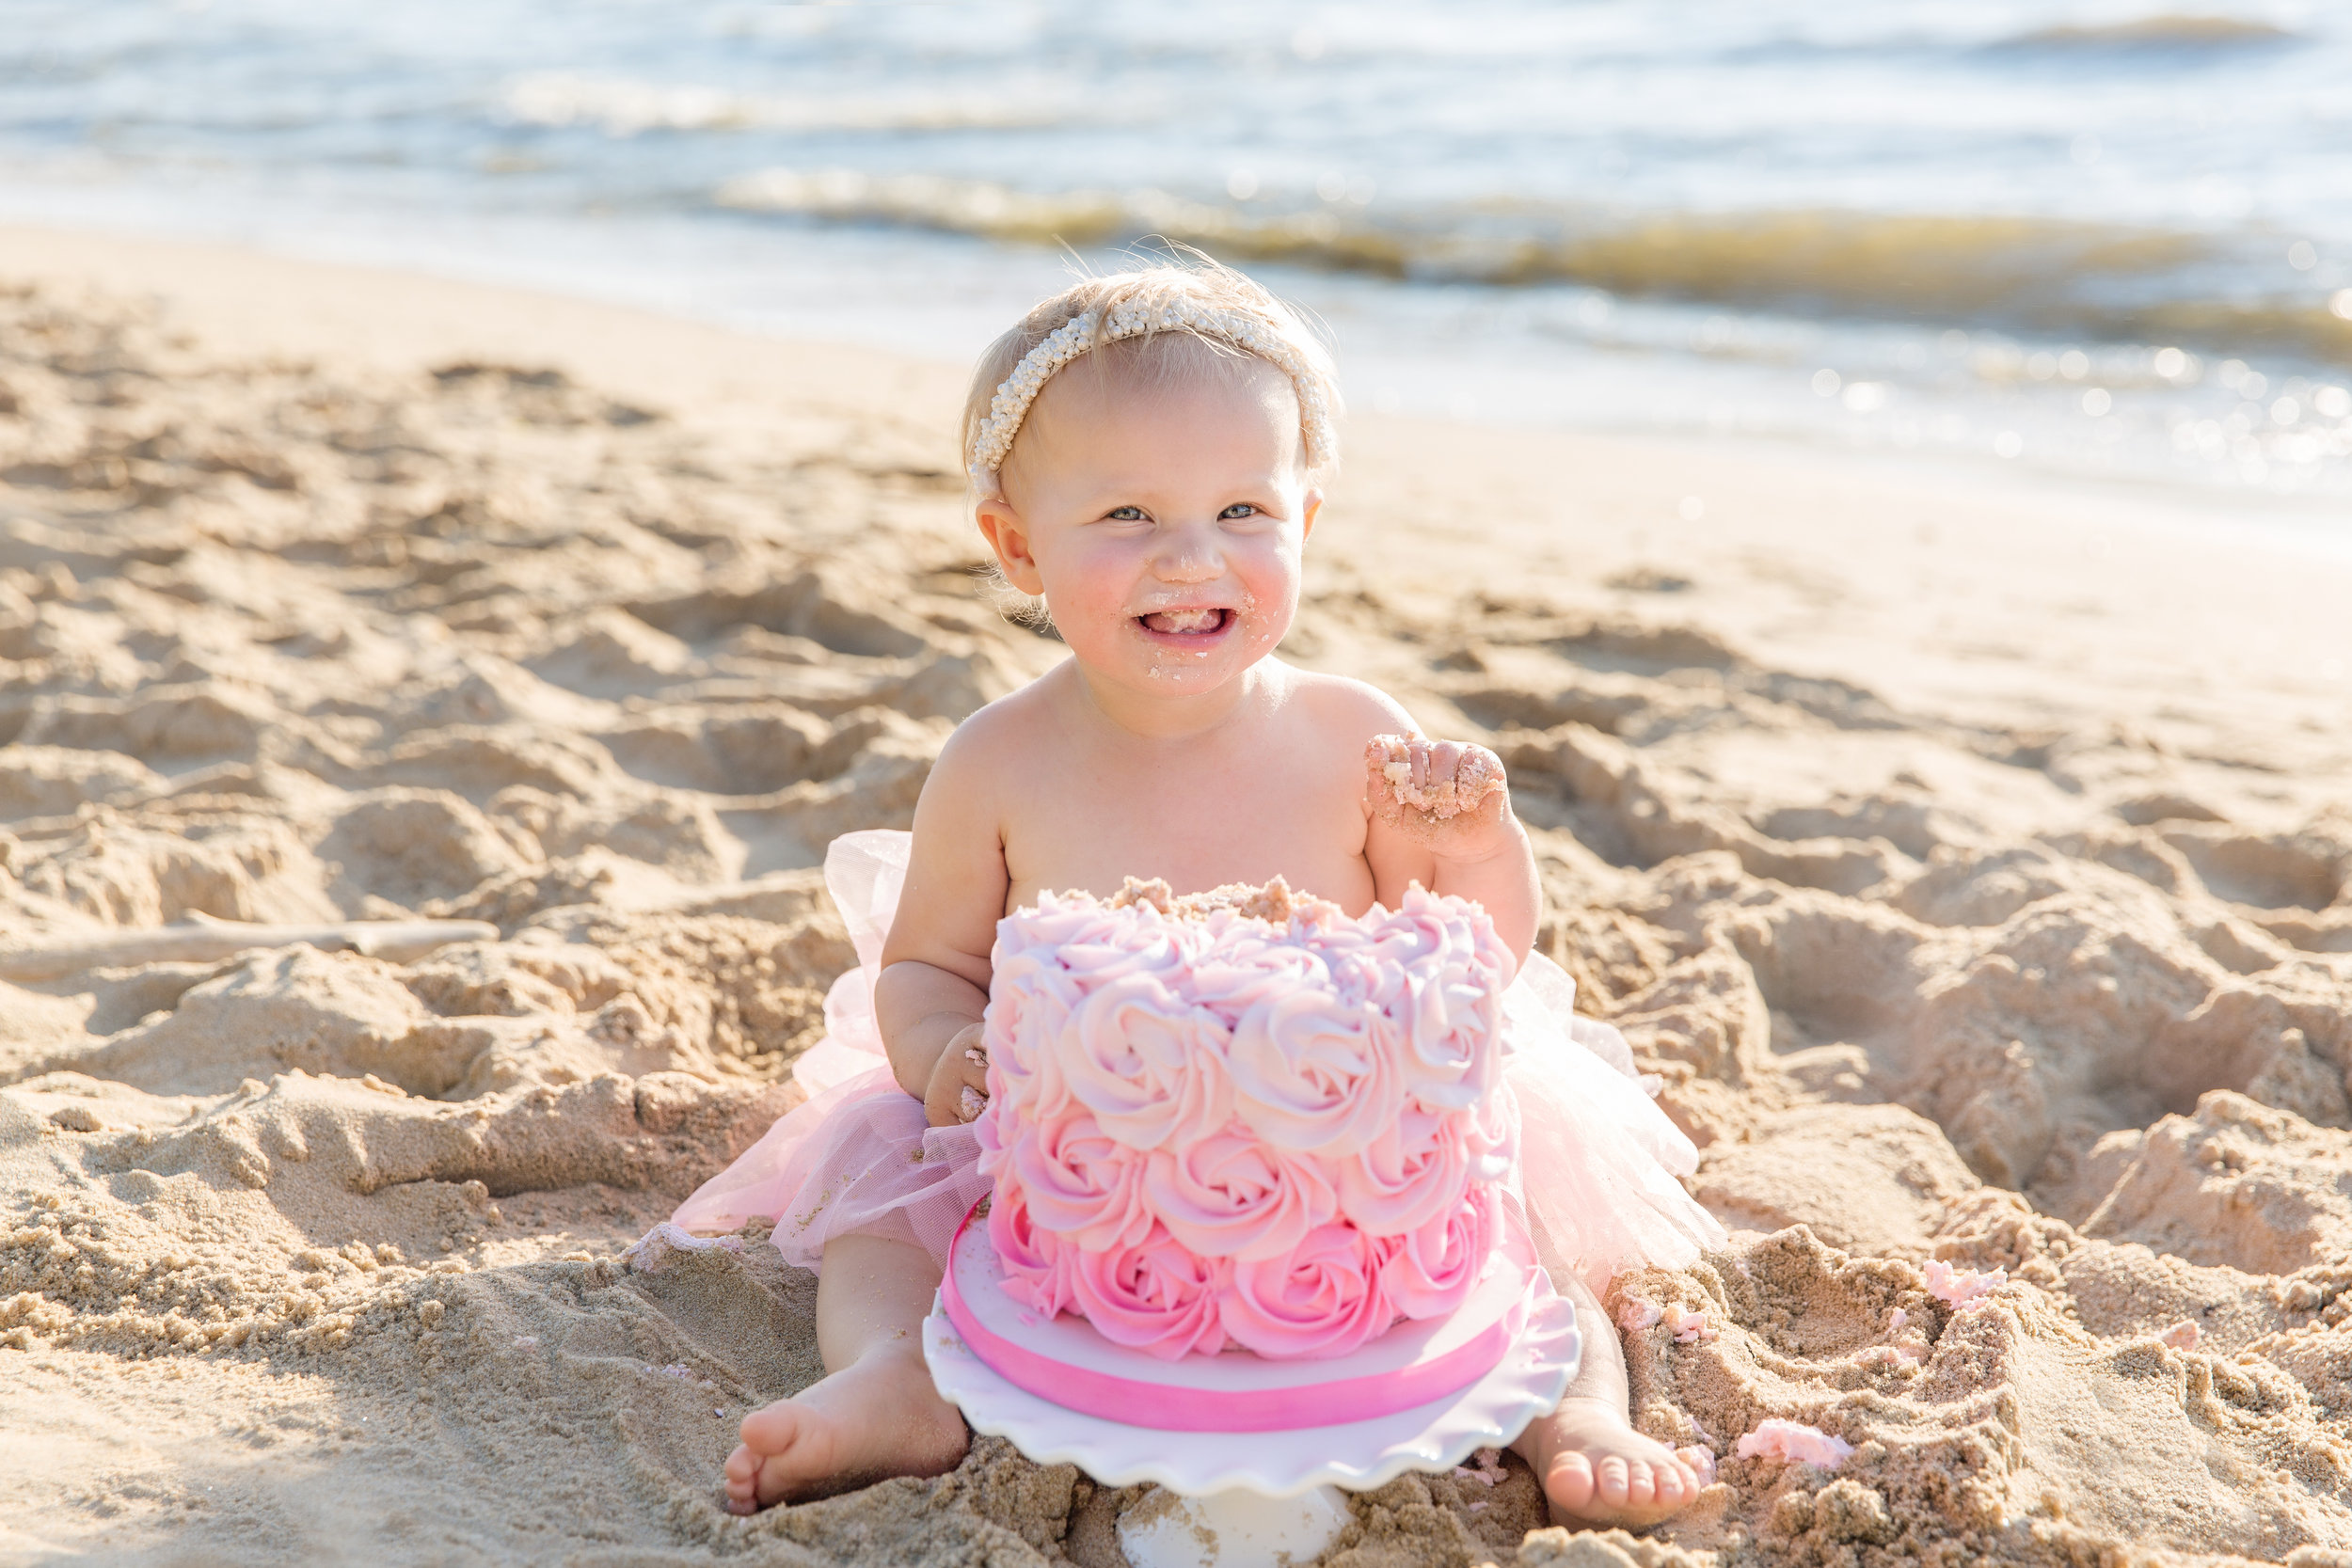 Marylandbabyphotographer_cakesmash_Beach-36.jpg